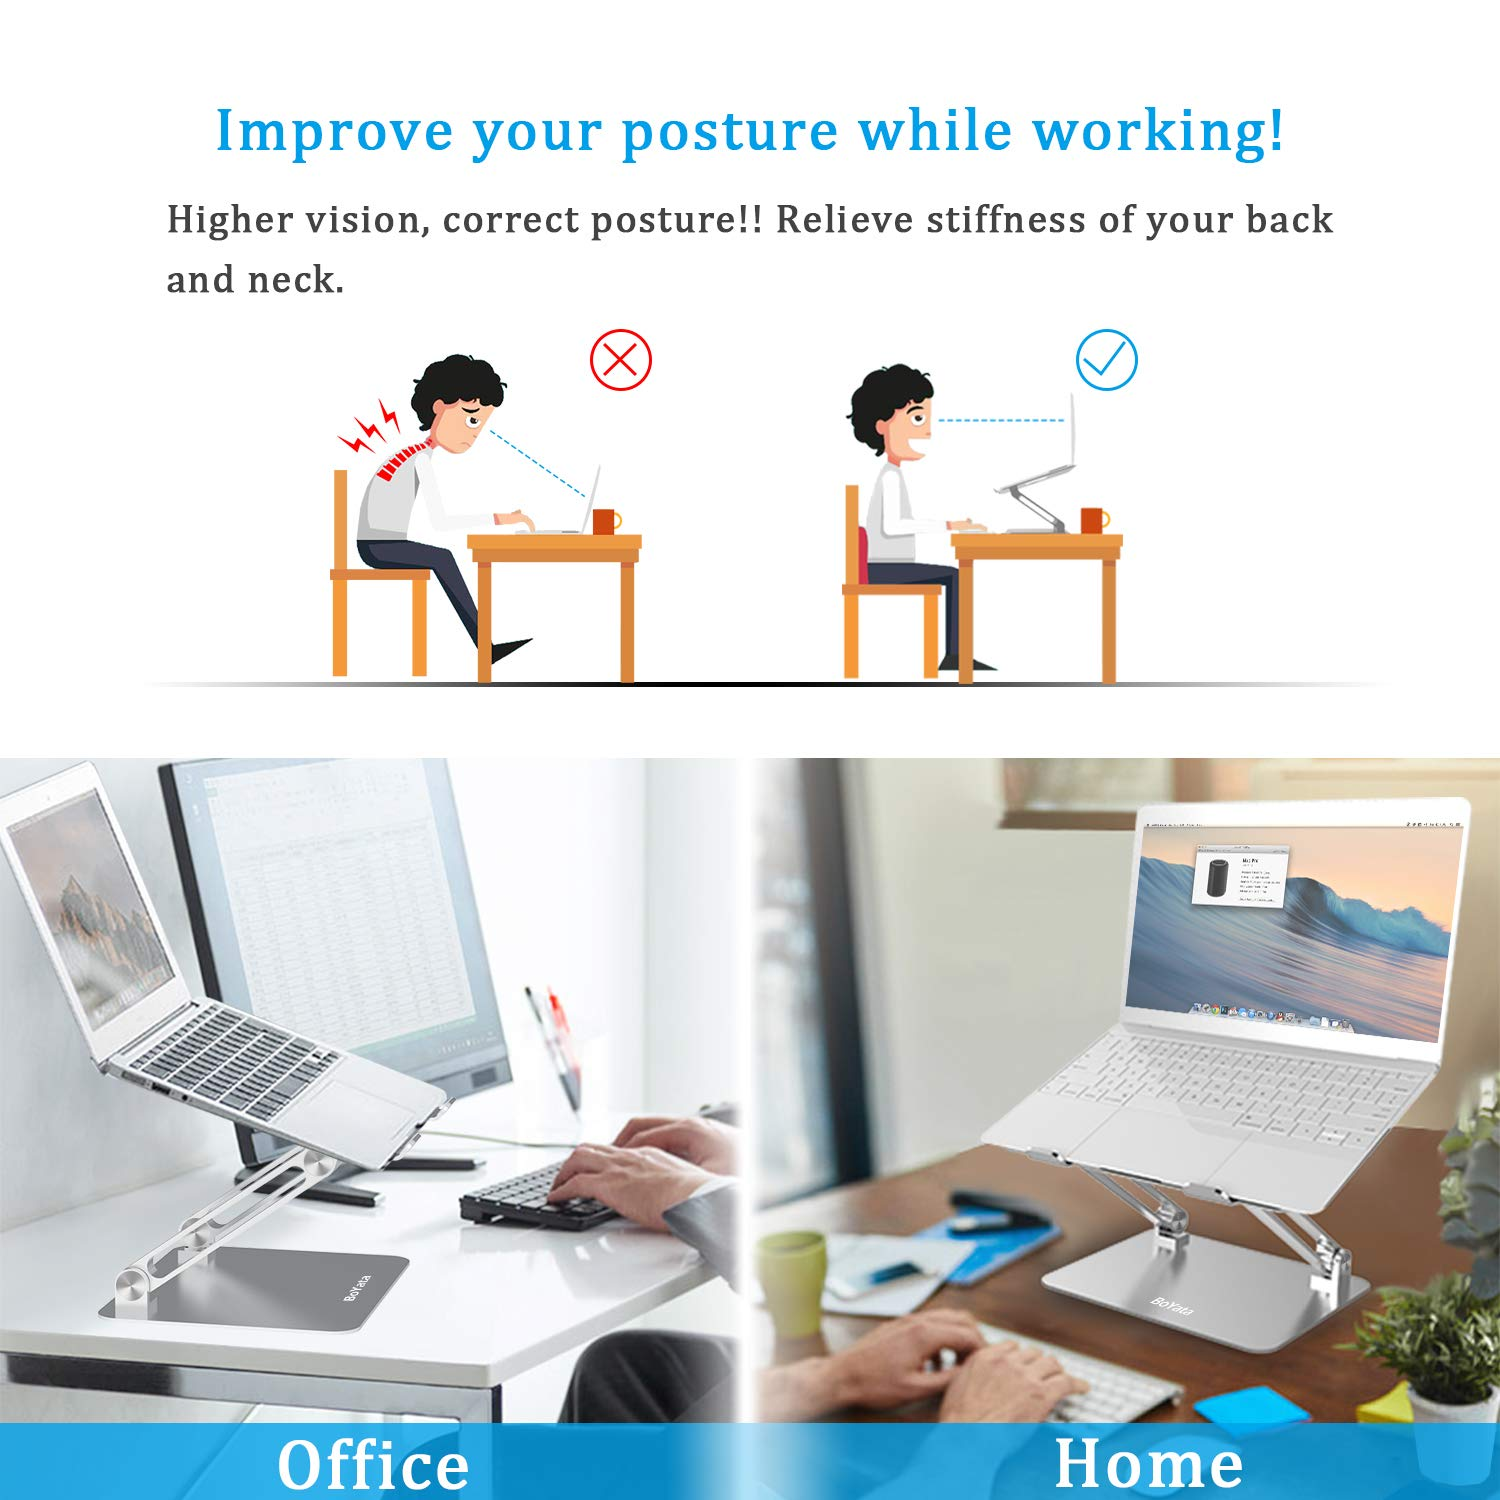 Laptop Stand, Boyata Laptop Holder, Multi-Angle Stand with Heat-Vent to Elevate Laptop, Adjustable Notebook Sand for Laptop (4-17 inch) Compatible for MacBook Pro/Air, Surface Laptop and so on by Boyata (Image #2)